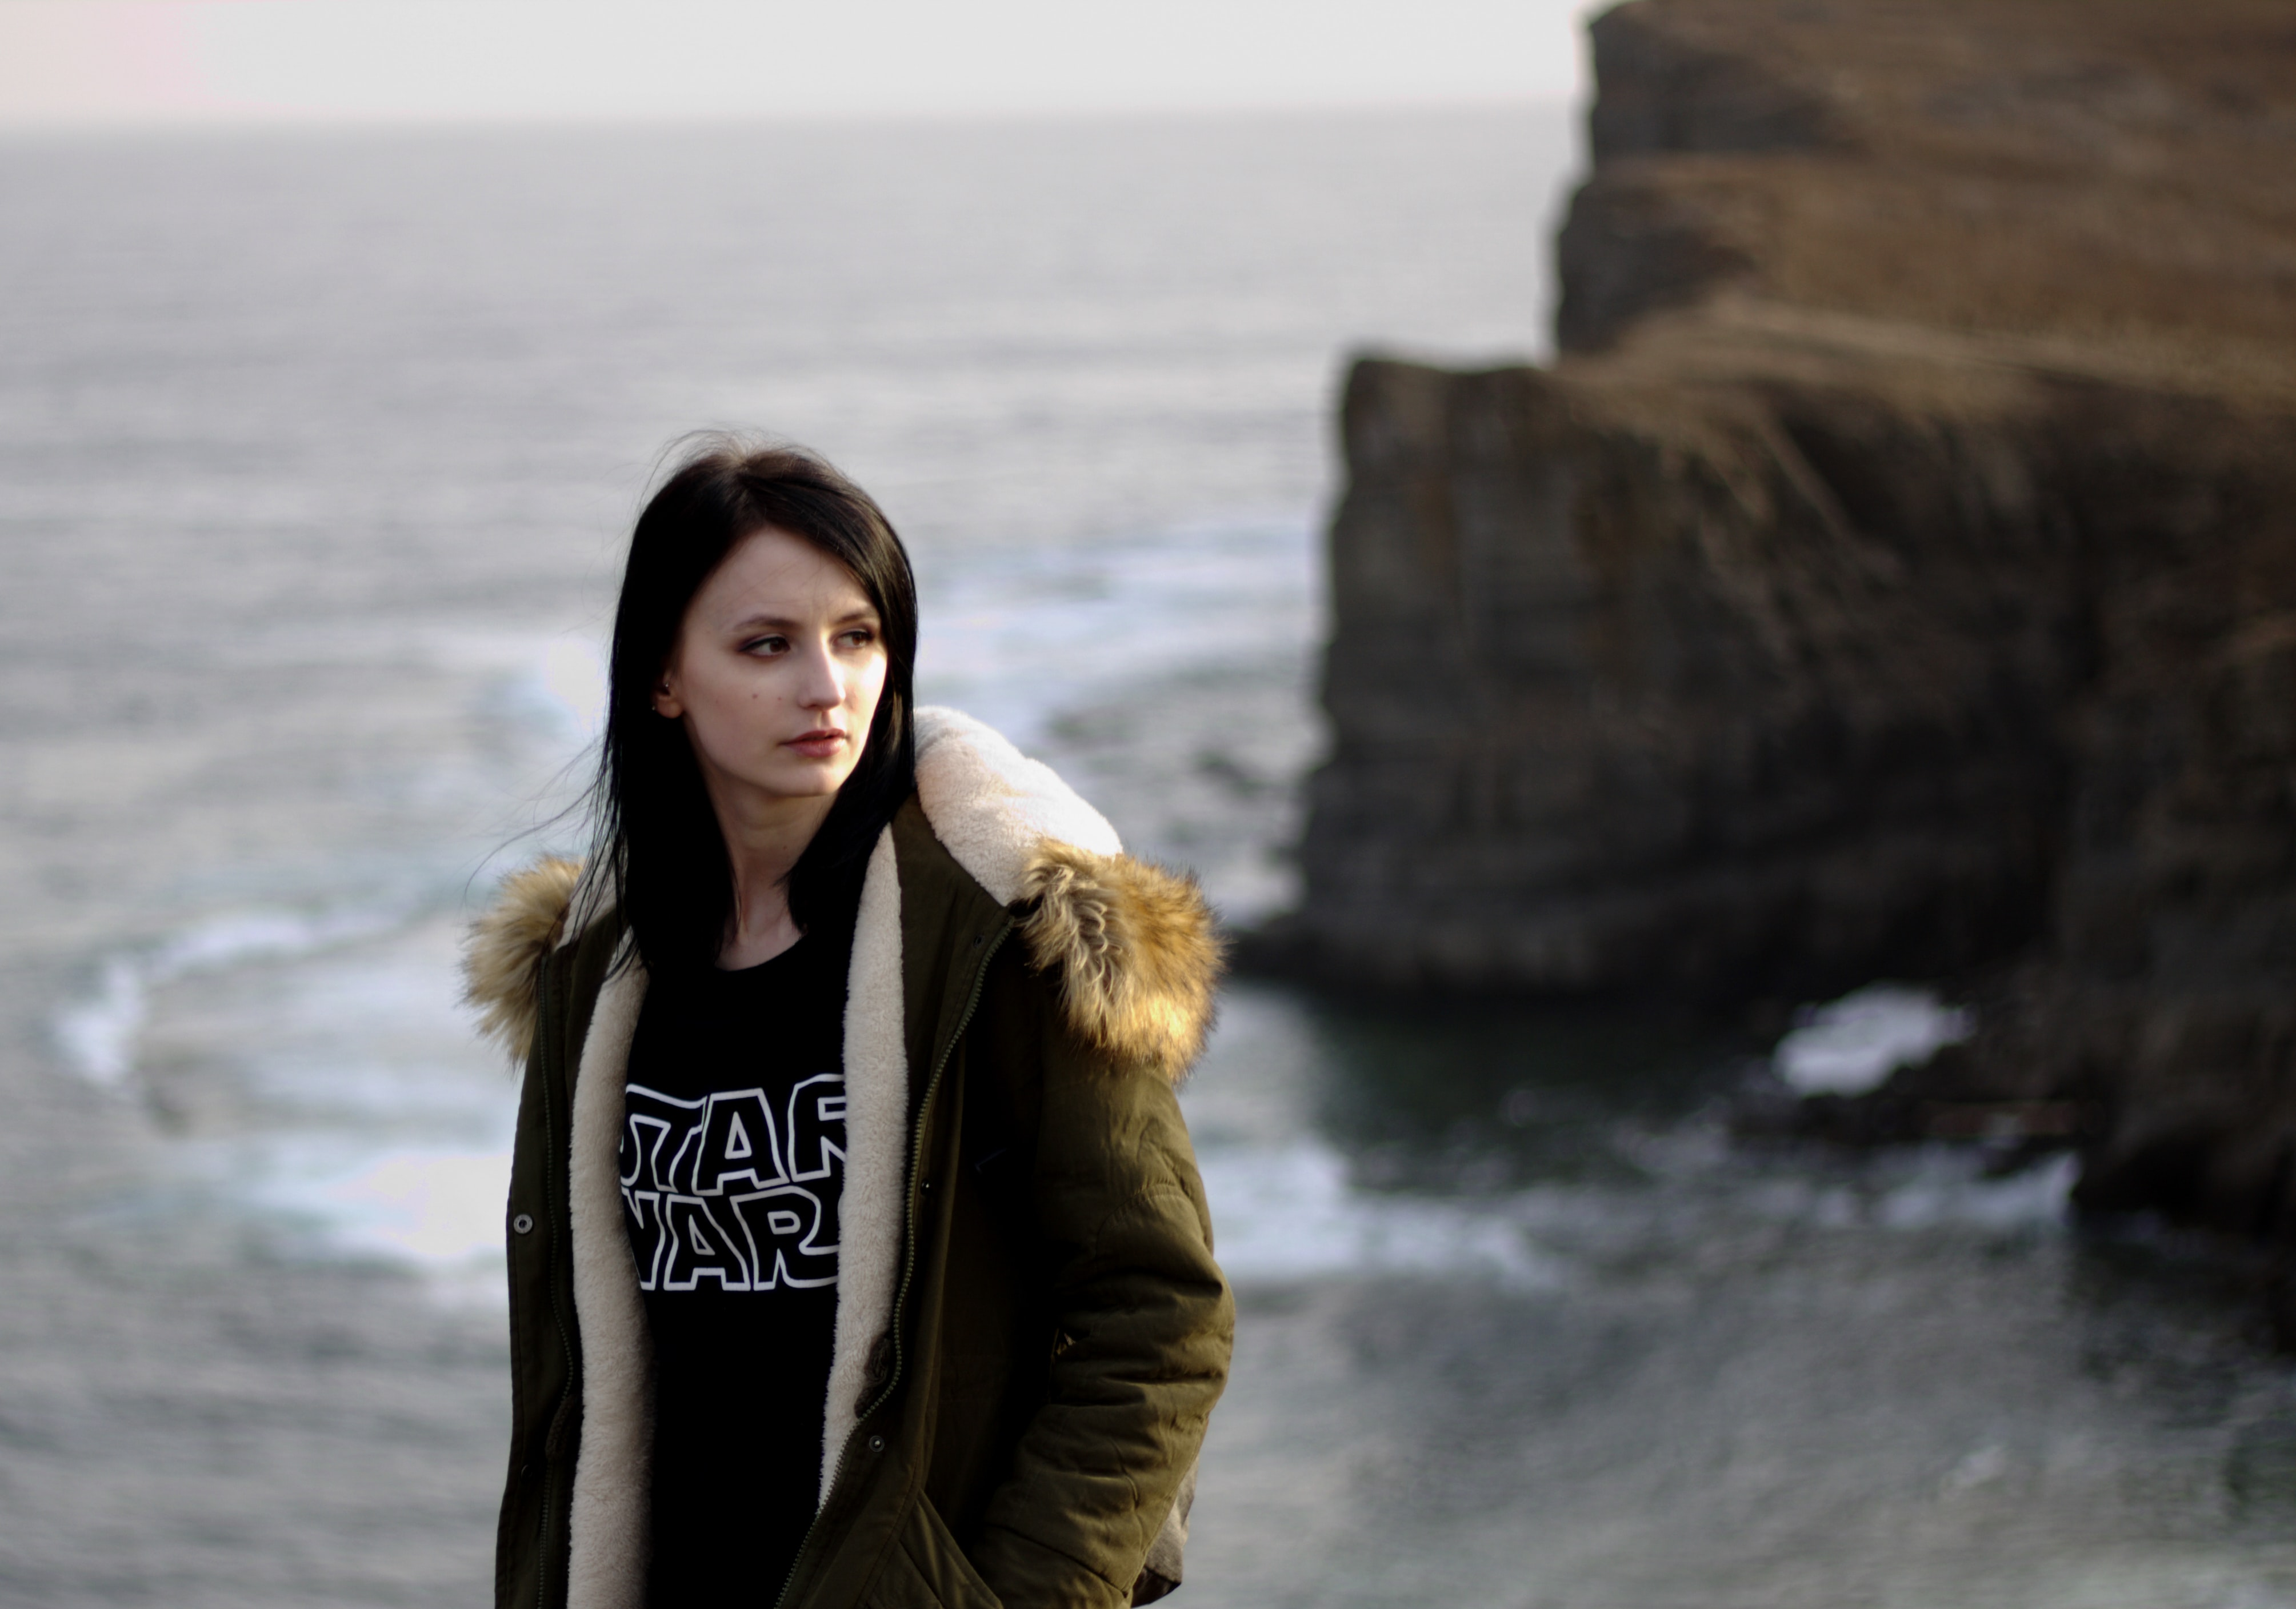 woman in brown parka jacket standing on rock formation